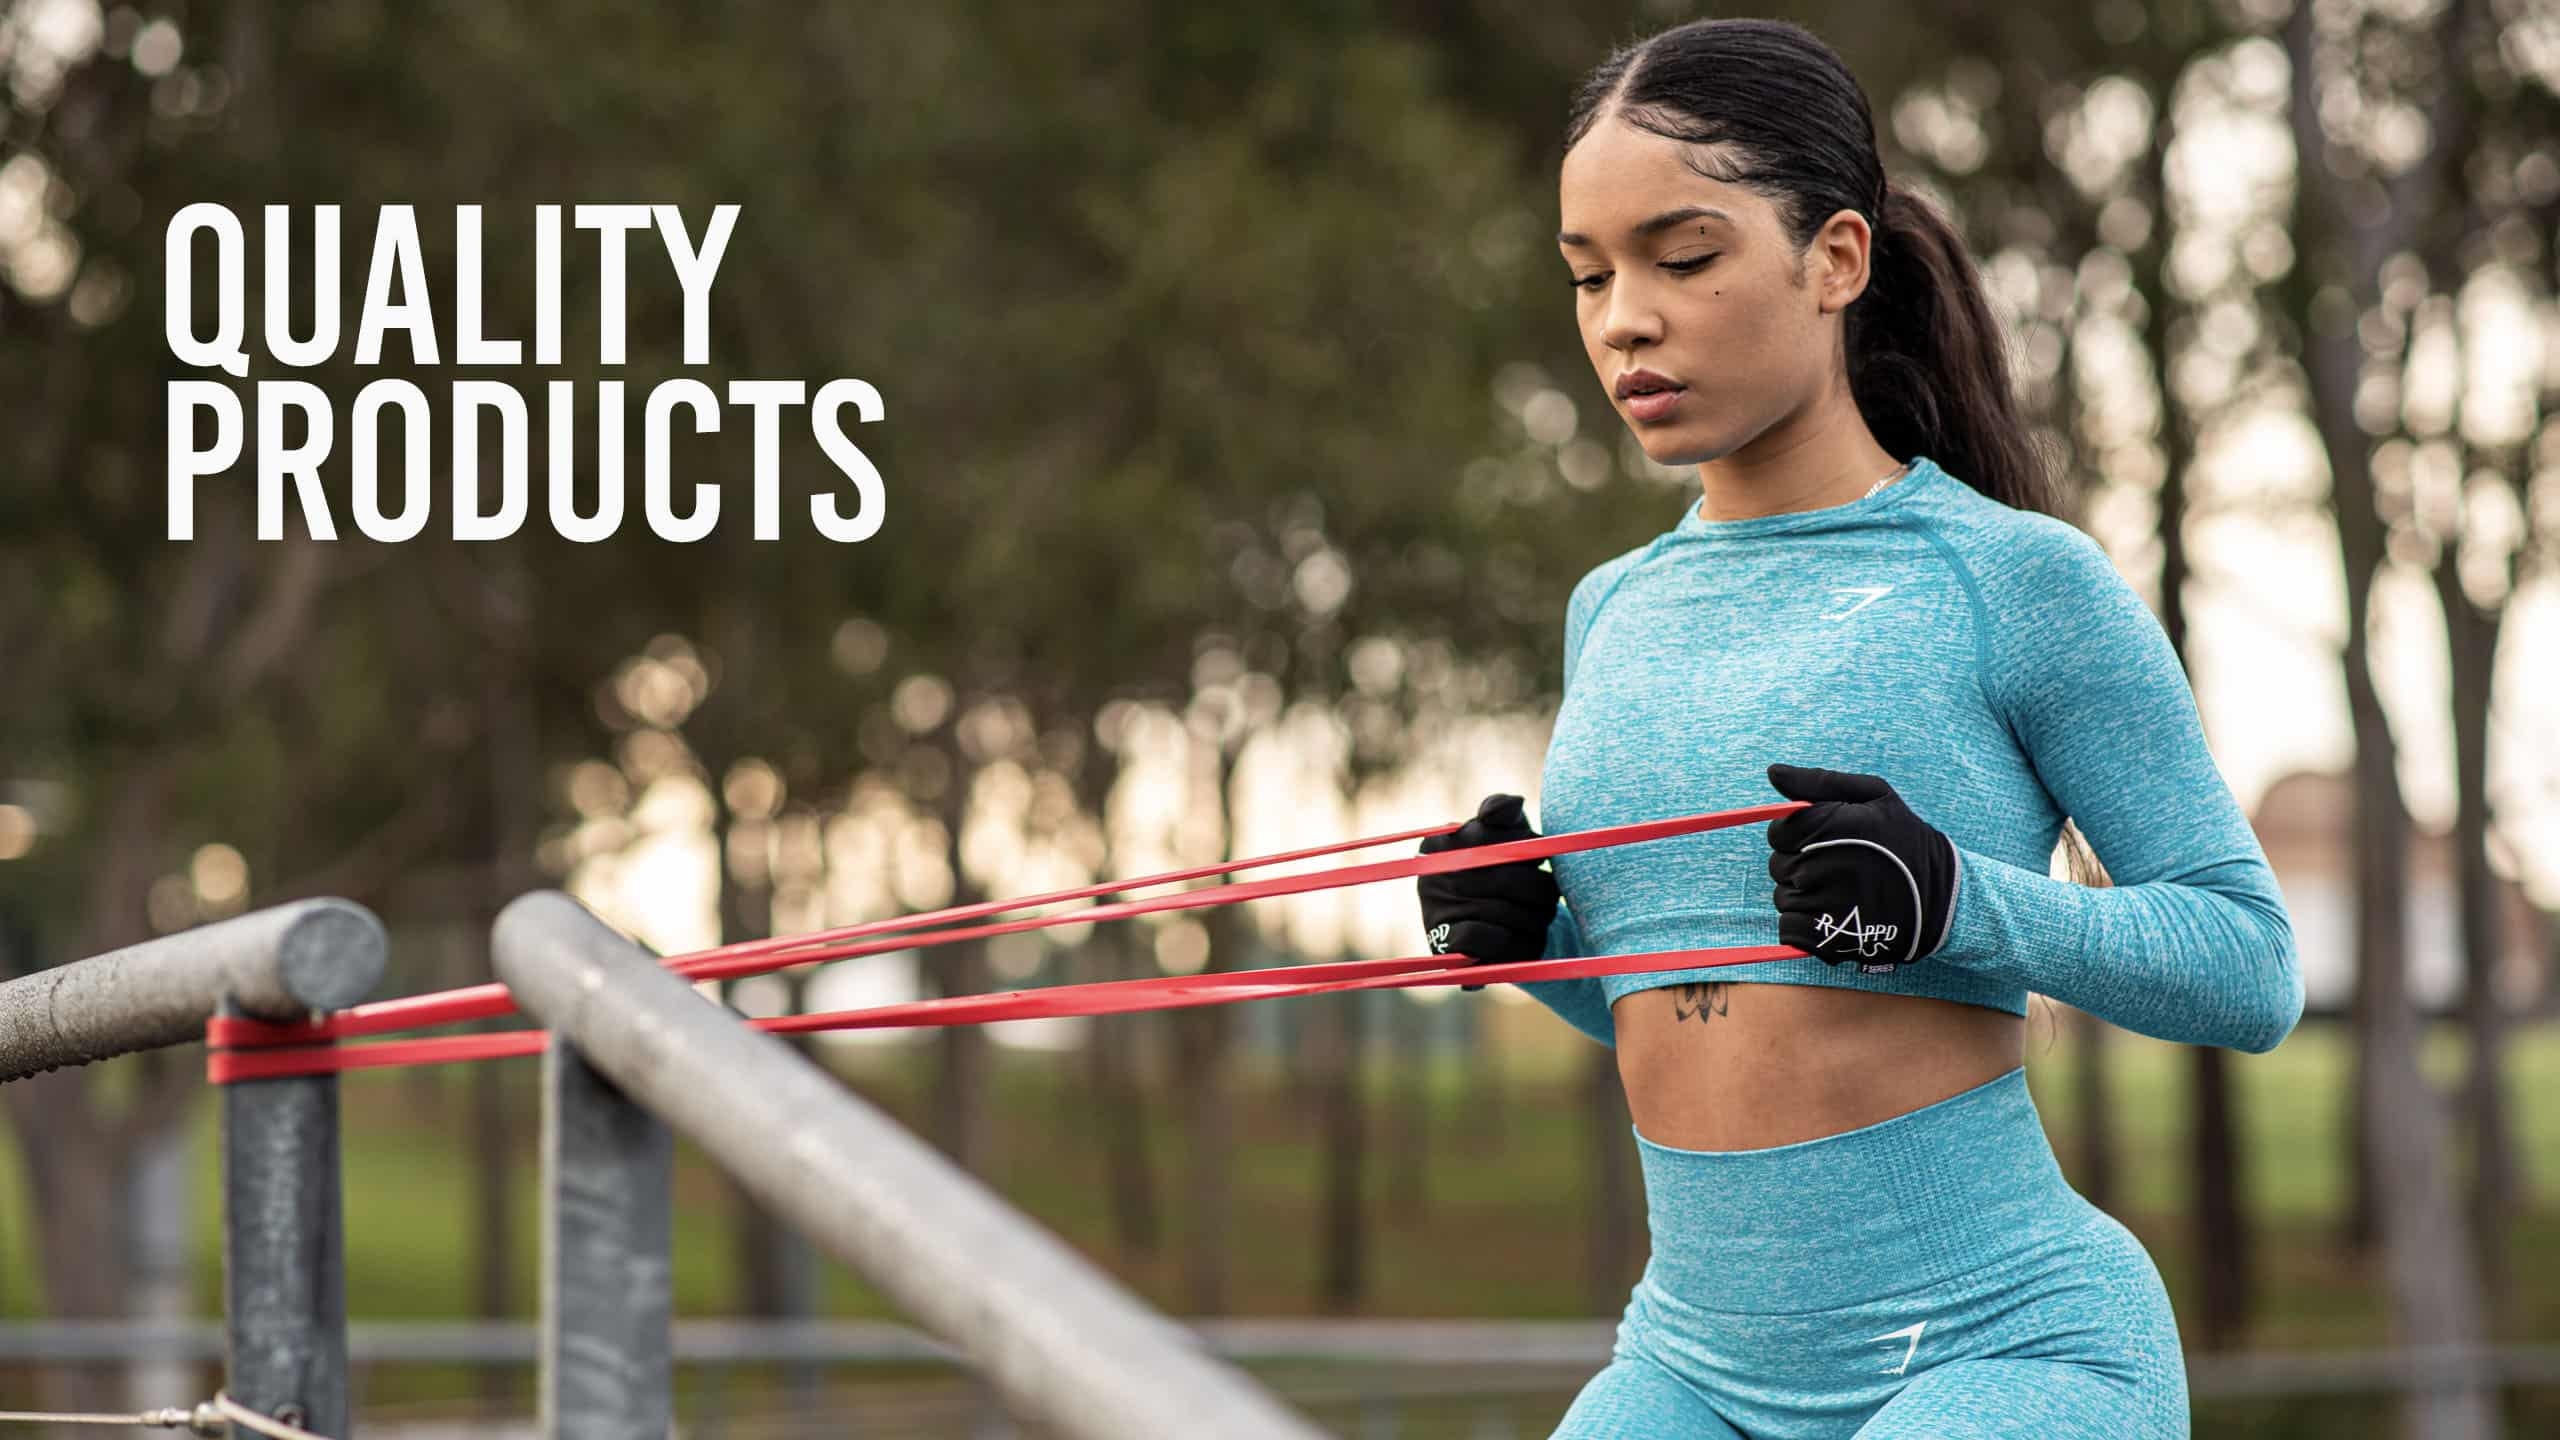 Rappd Quality Products banner with woman using resistance bands